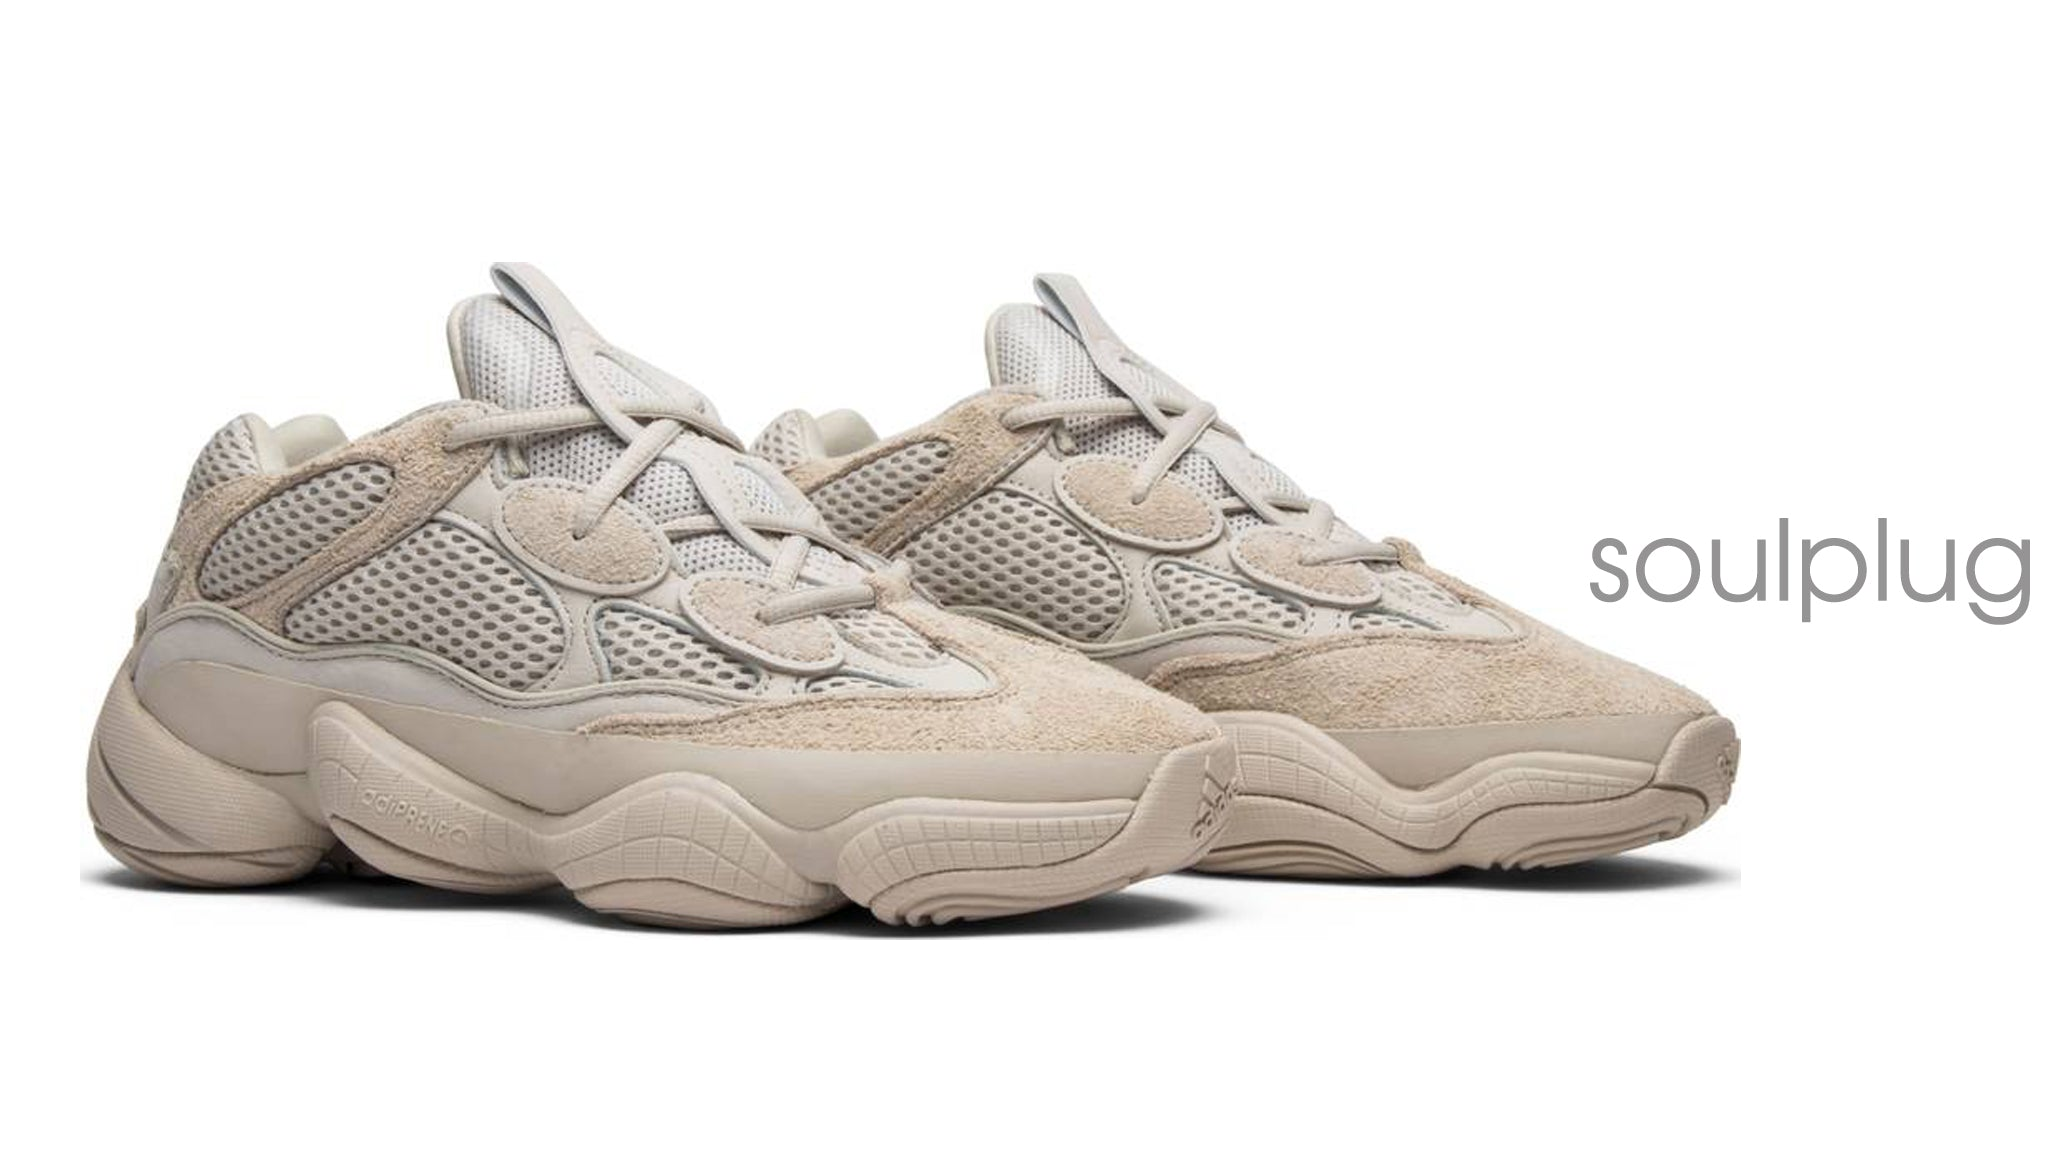 ADIDAS YEEZY 500 BLUSH REVIEW & ON FEET! Watch BEFORE